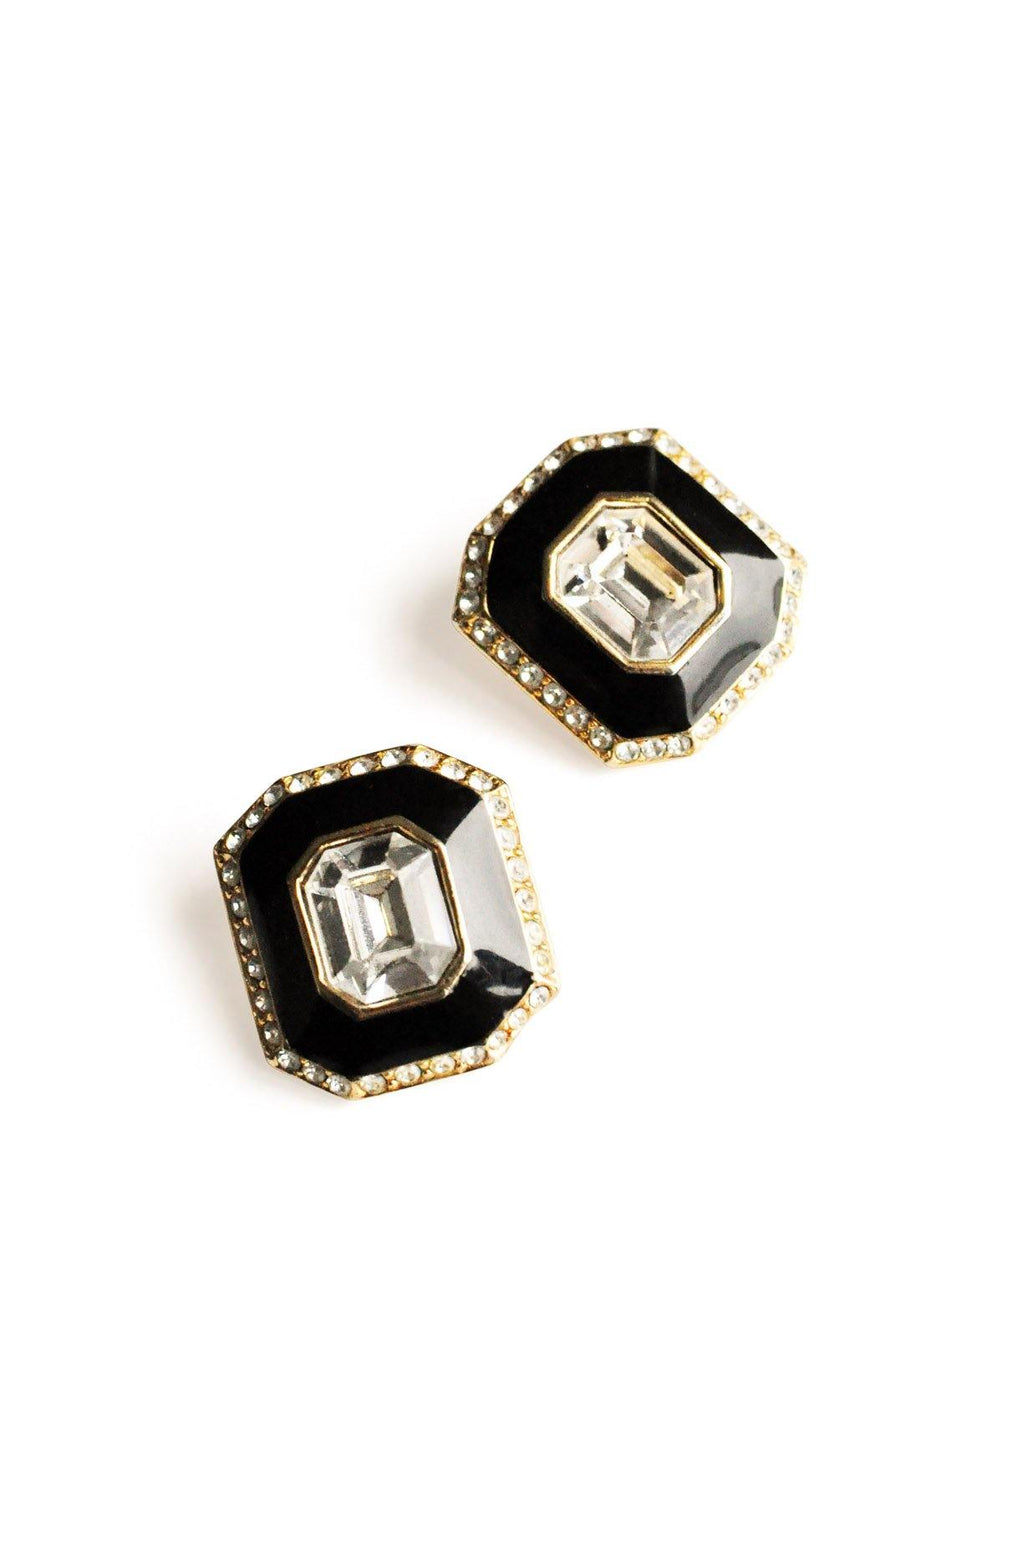 Rhinestone Black Enamel Clip-On Earrings